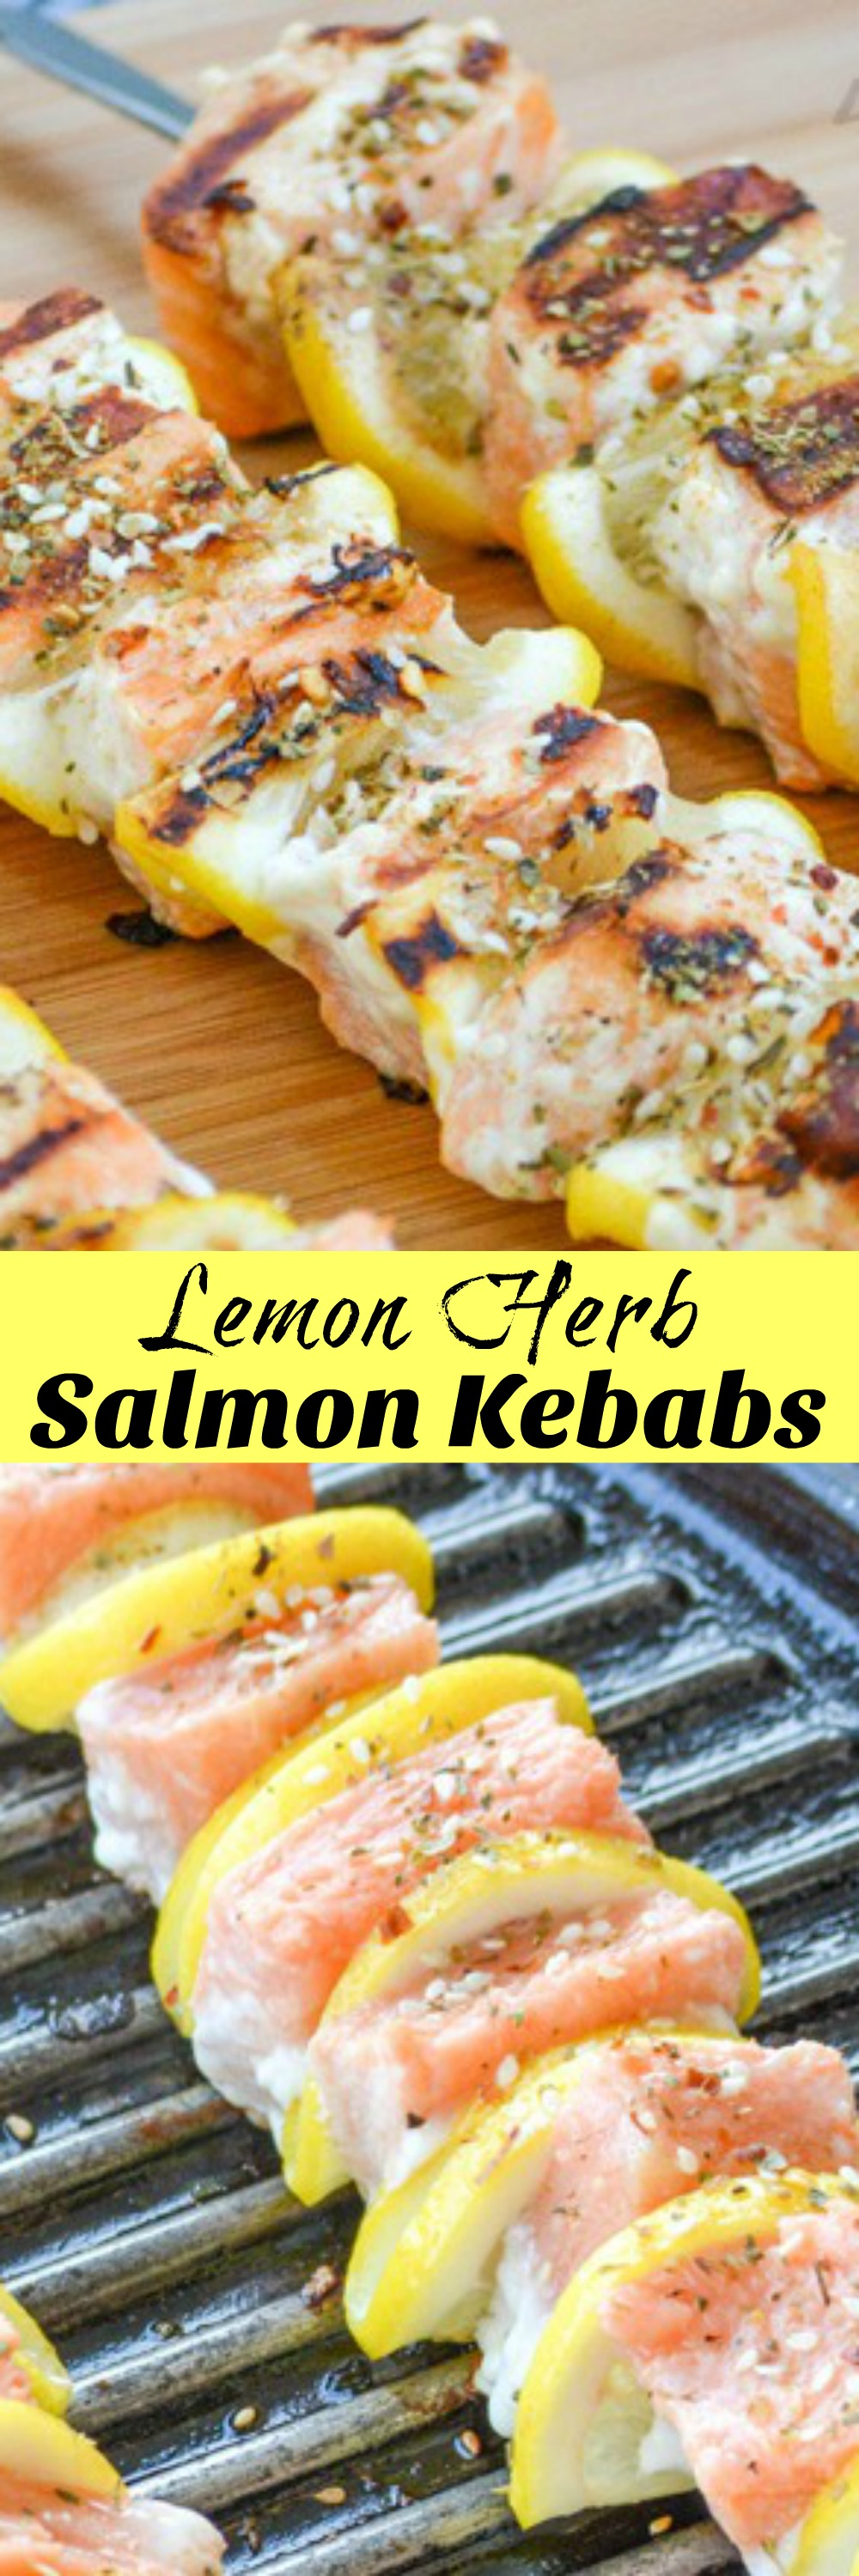 A healthy, powerhouse of a meal- these Grilled Herb Lemon Salmon Kebabs are full of refreshing flavor, but low on fat and calories. Easily prepared, and quickly cooked on the grill they're a budget-friendly crowd pleasing dinner that's perfect for warm Spring evenings and hot Summer days.